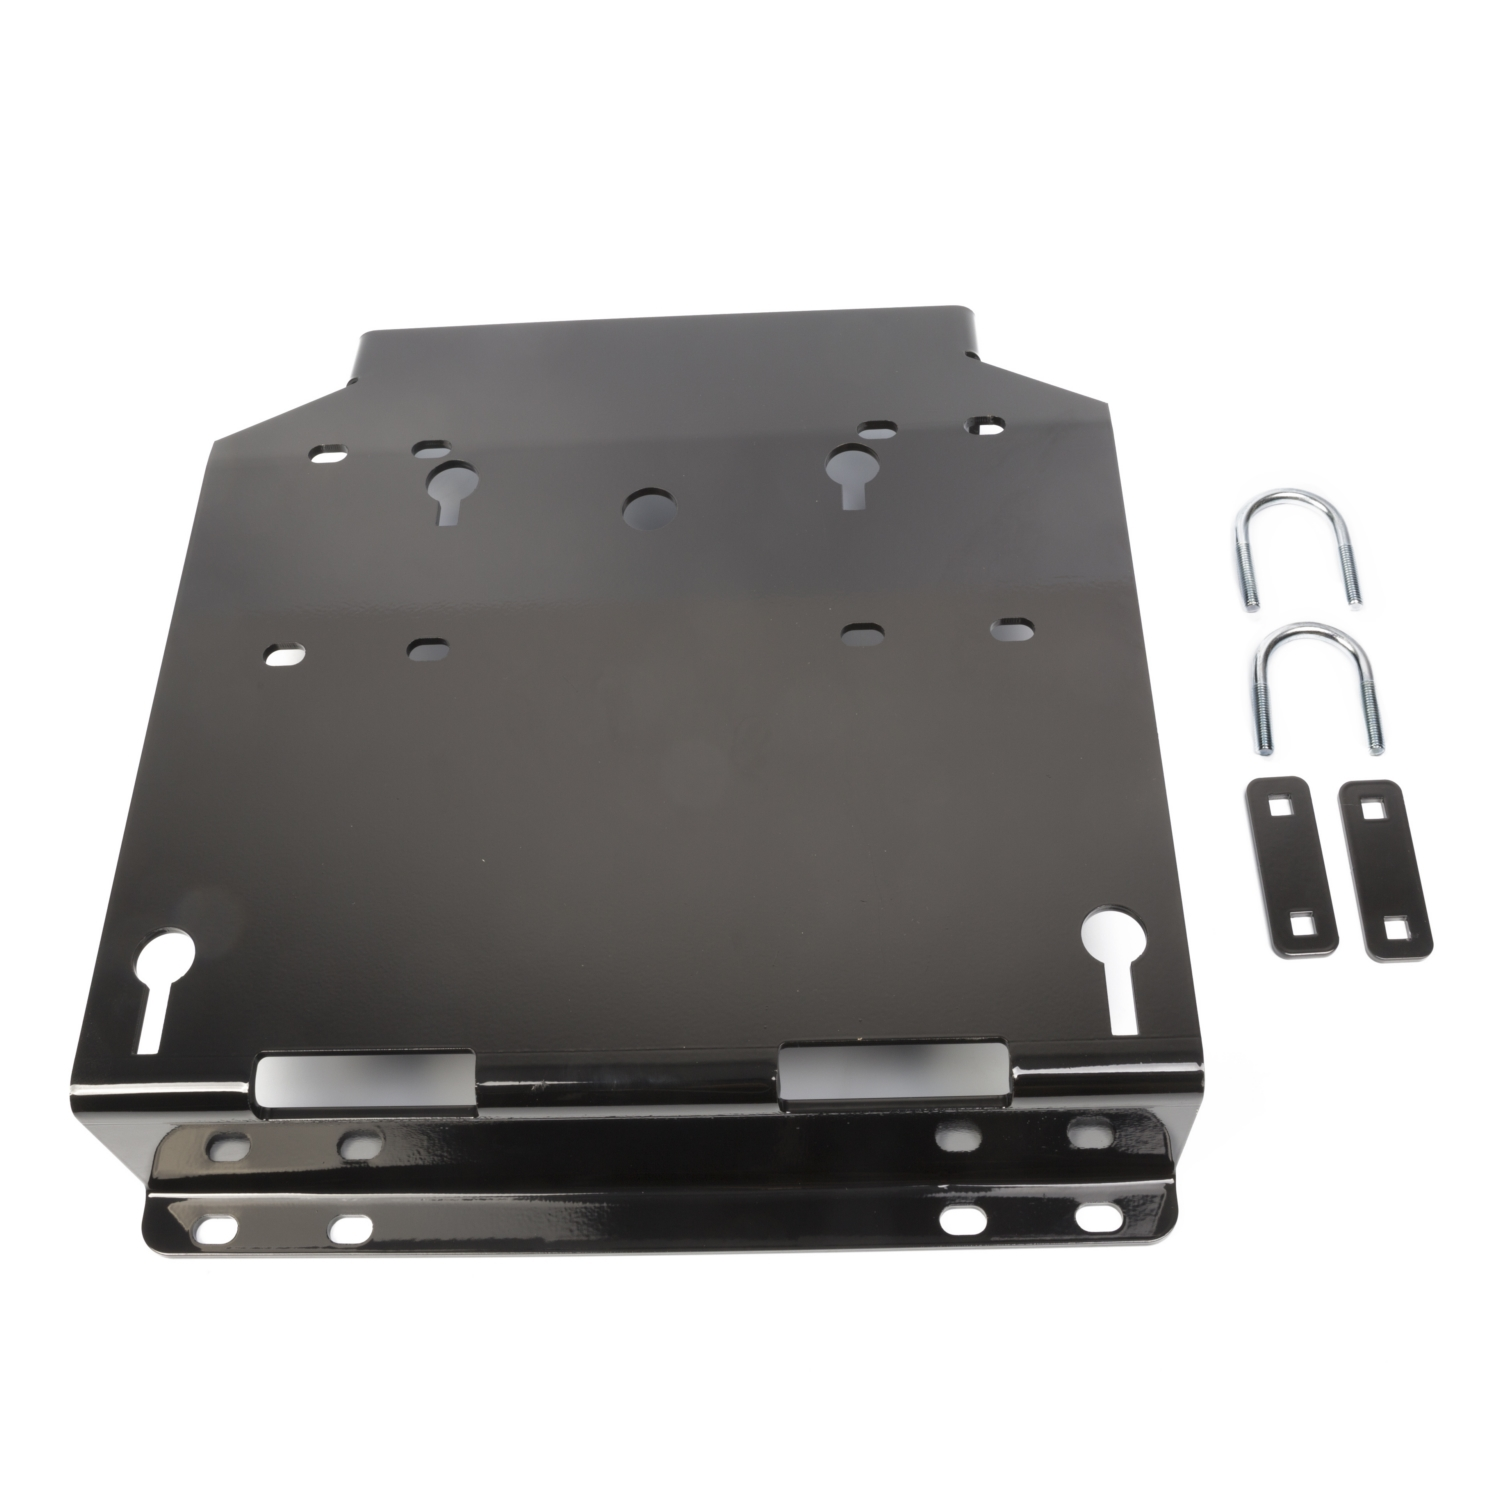 CLICK N GO CNG 2 Snow Plow Bracket for UTV Black  #374373